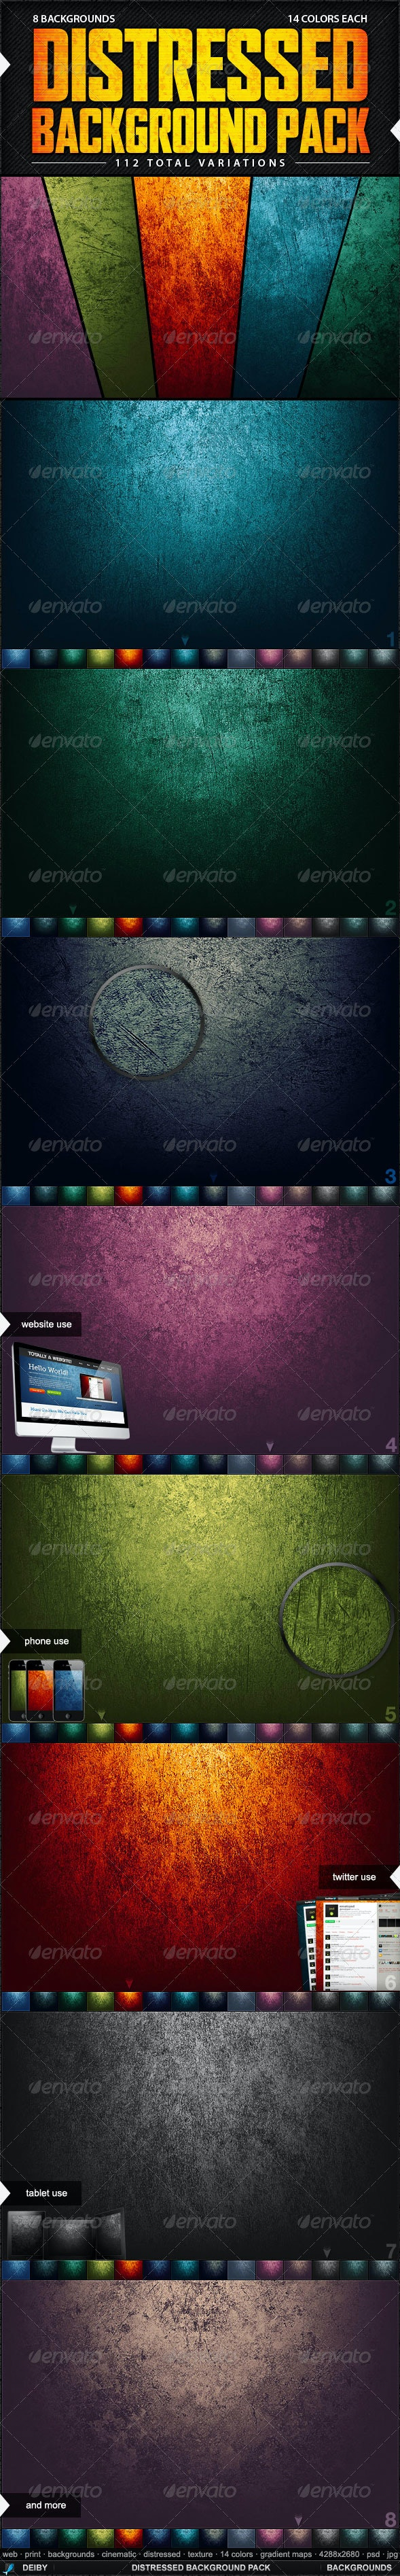 Distressed Background Pack - Backgrounds Graphics